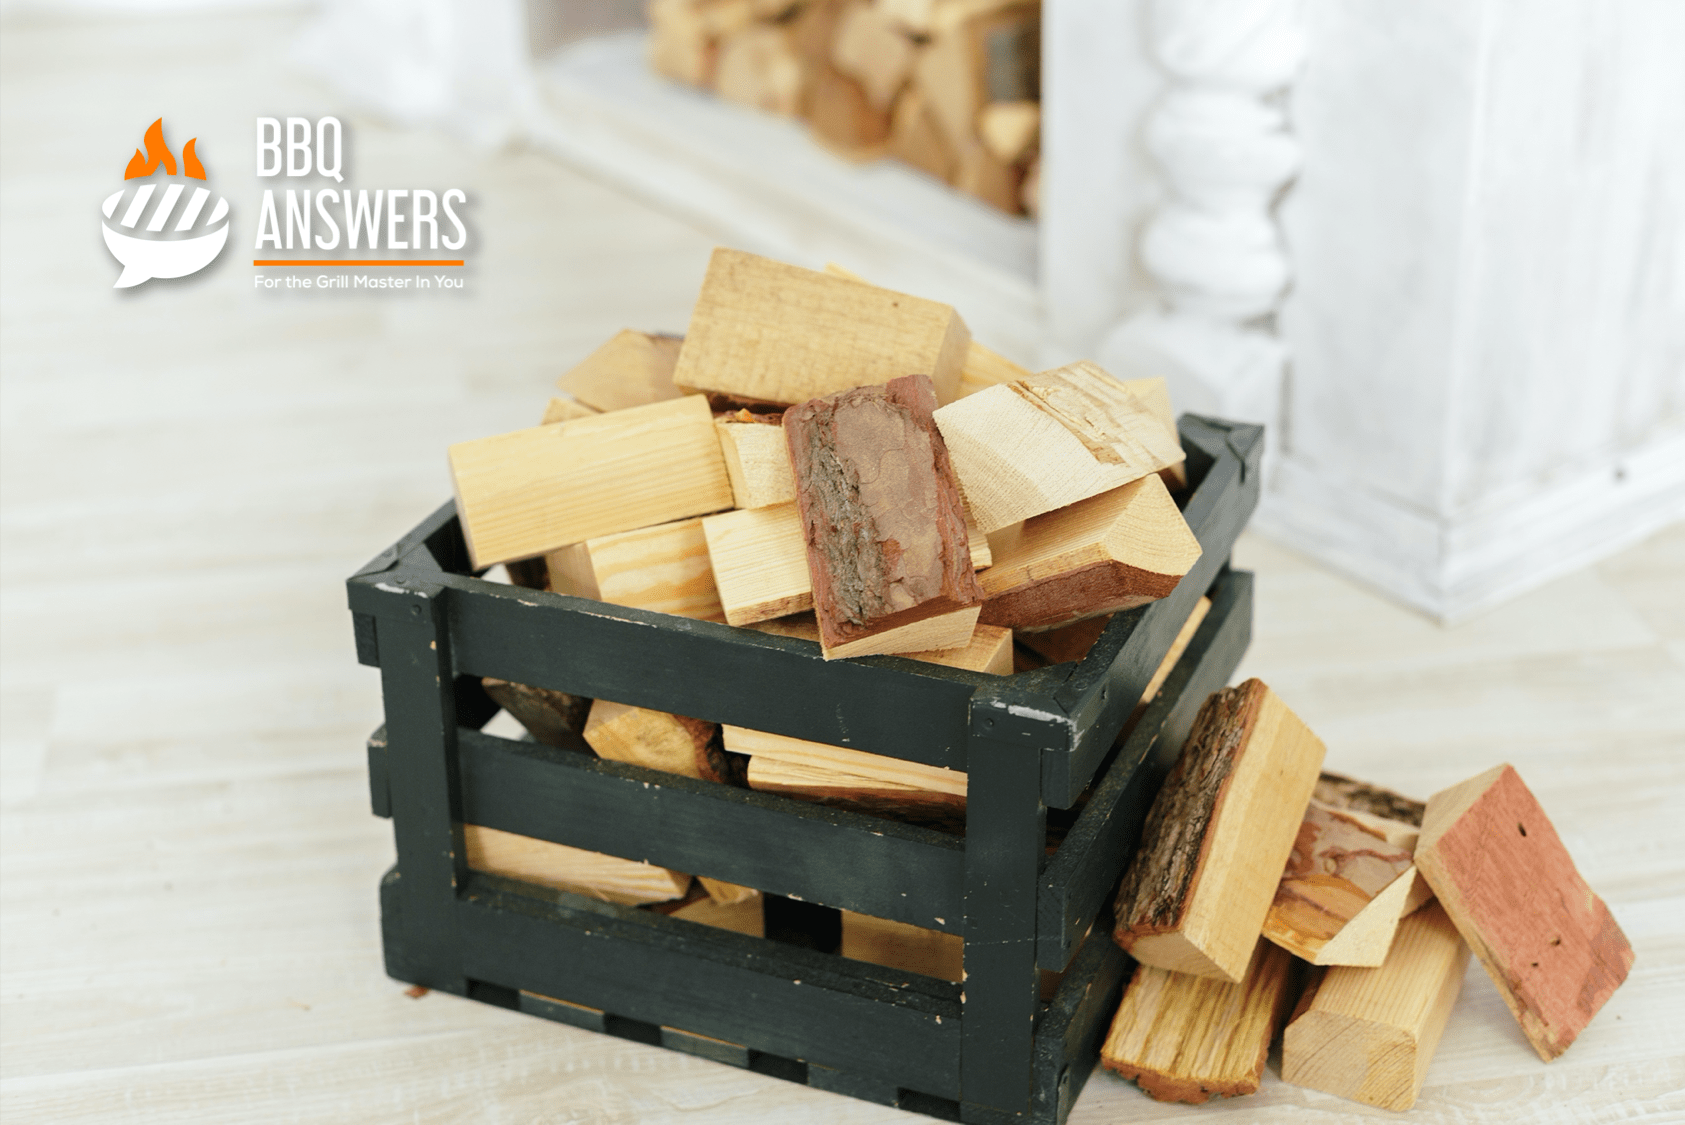 Wood Chunks | Guide to BBQ Wood Selection | BBQanswers